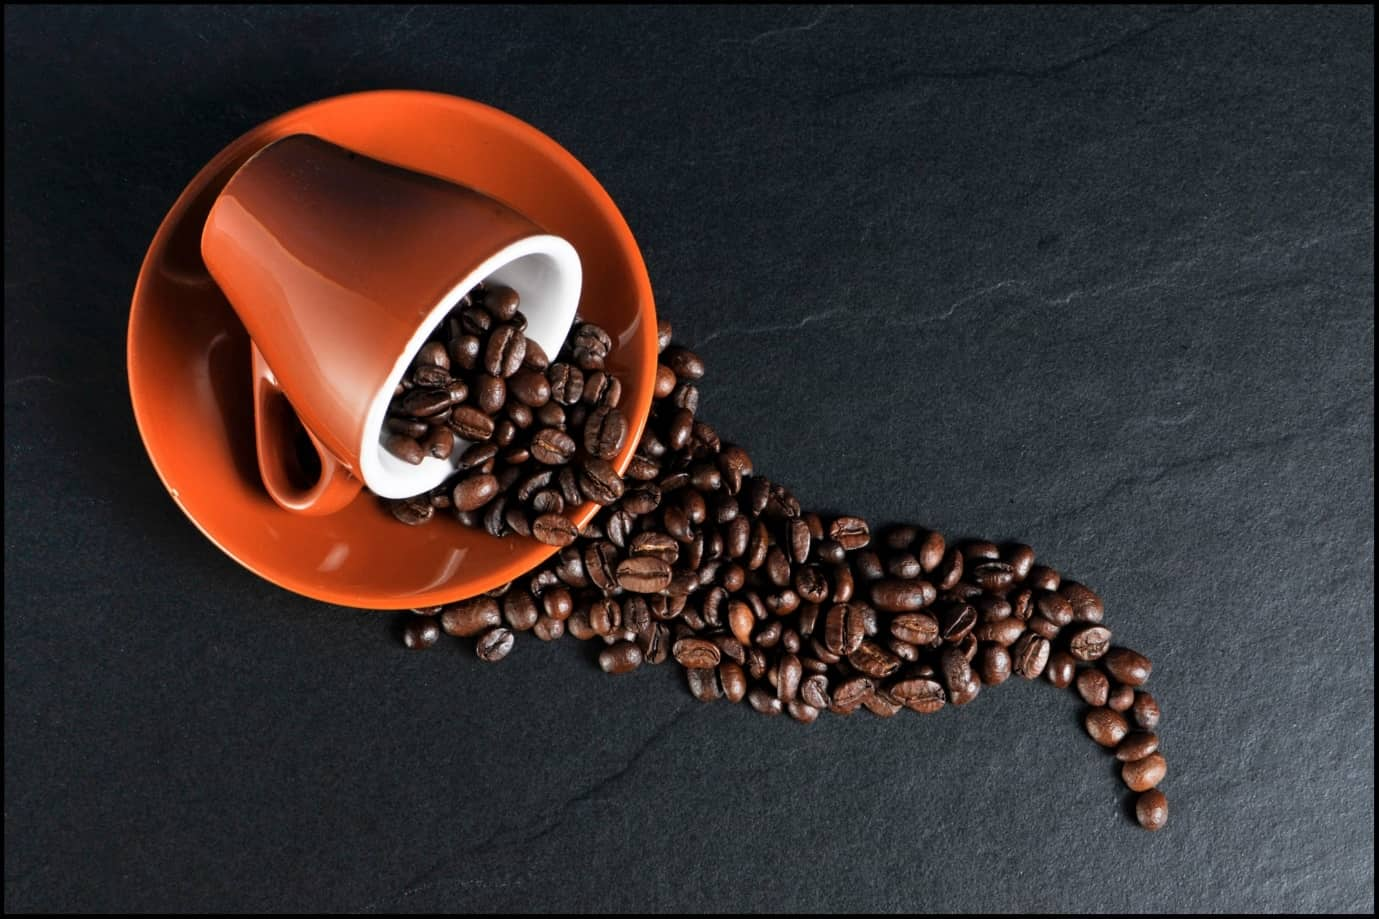 This Is What You Need to Do If You Spilled Coffee on Your Carpet. The cup full of coffee grains